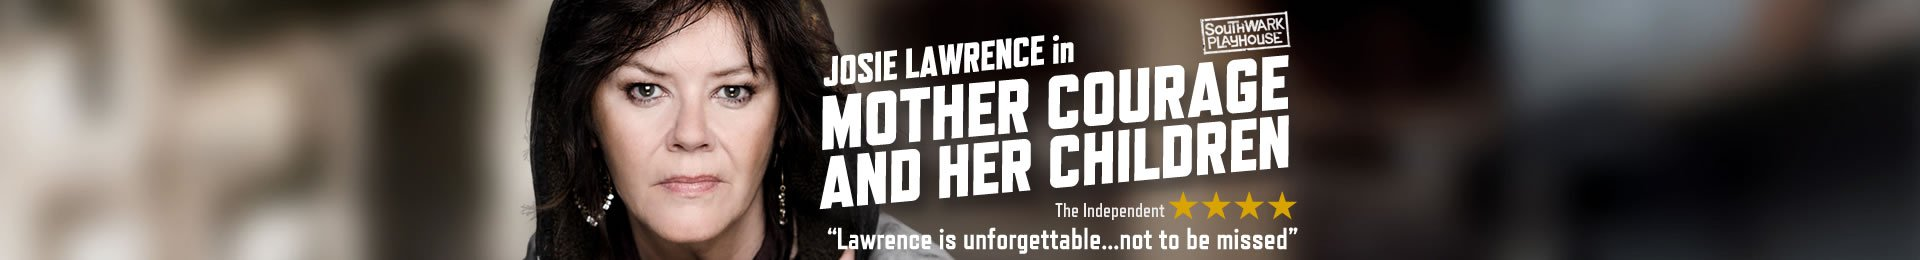 Mother Courage and Her Children banner image